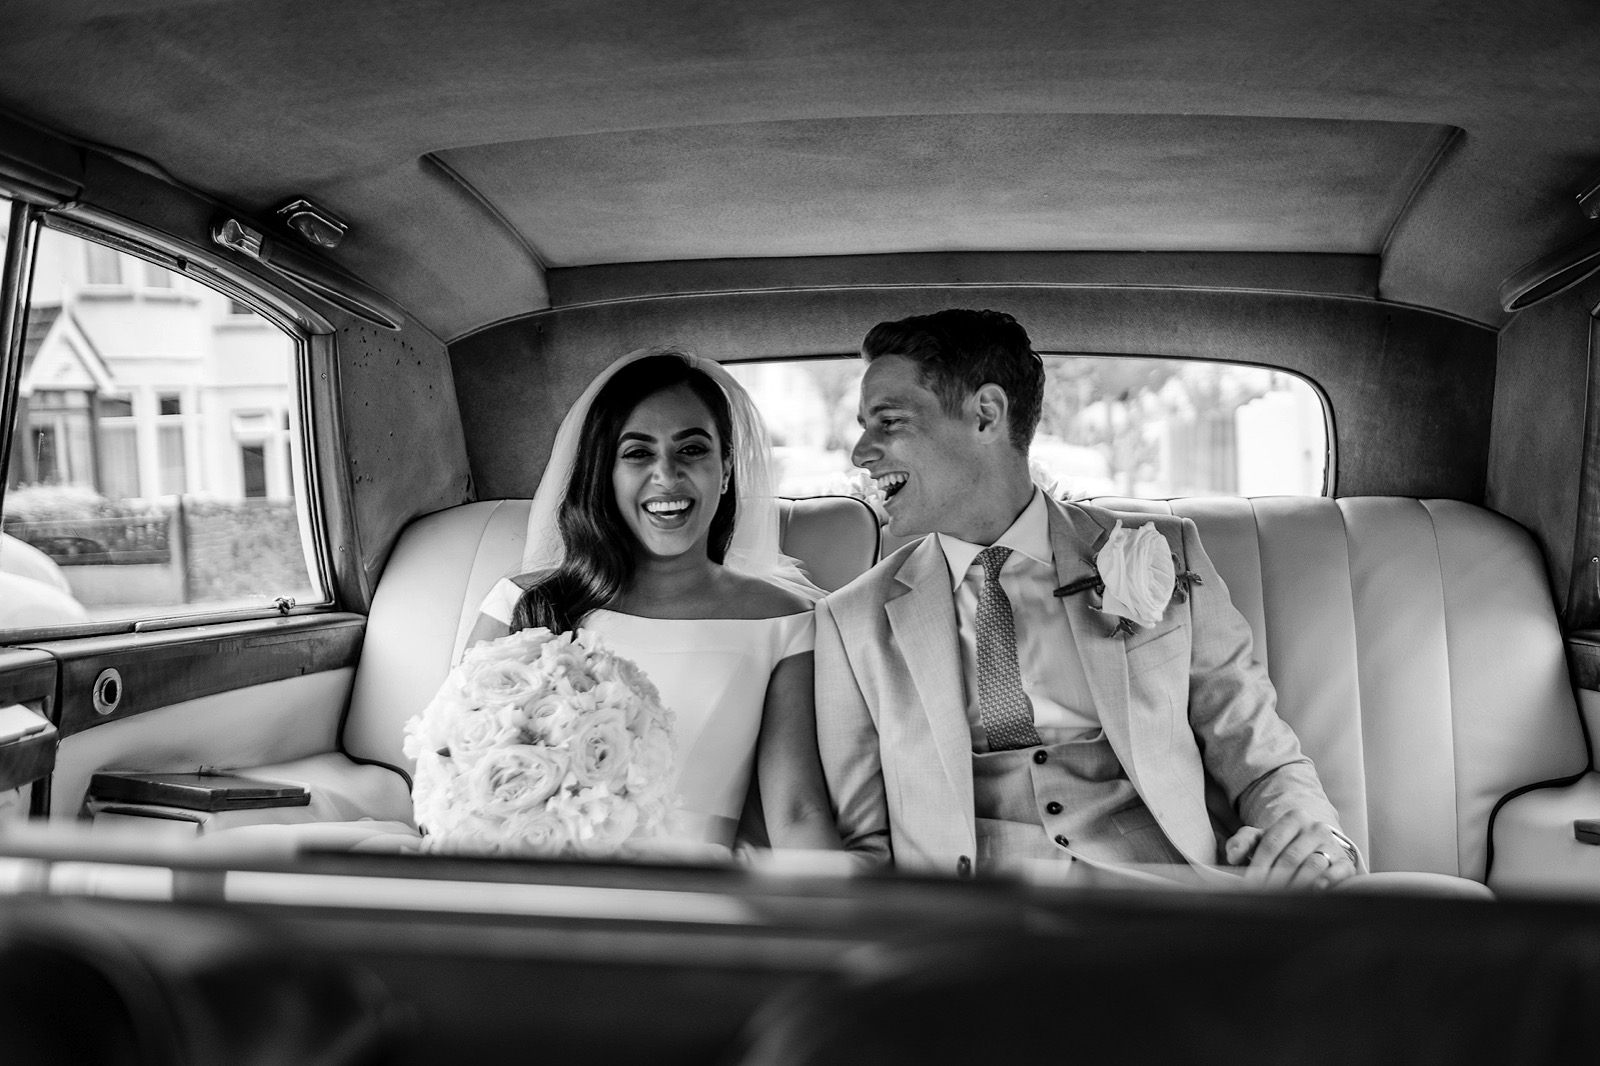 Bride & groom sat in the backseat of wedding car laughing